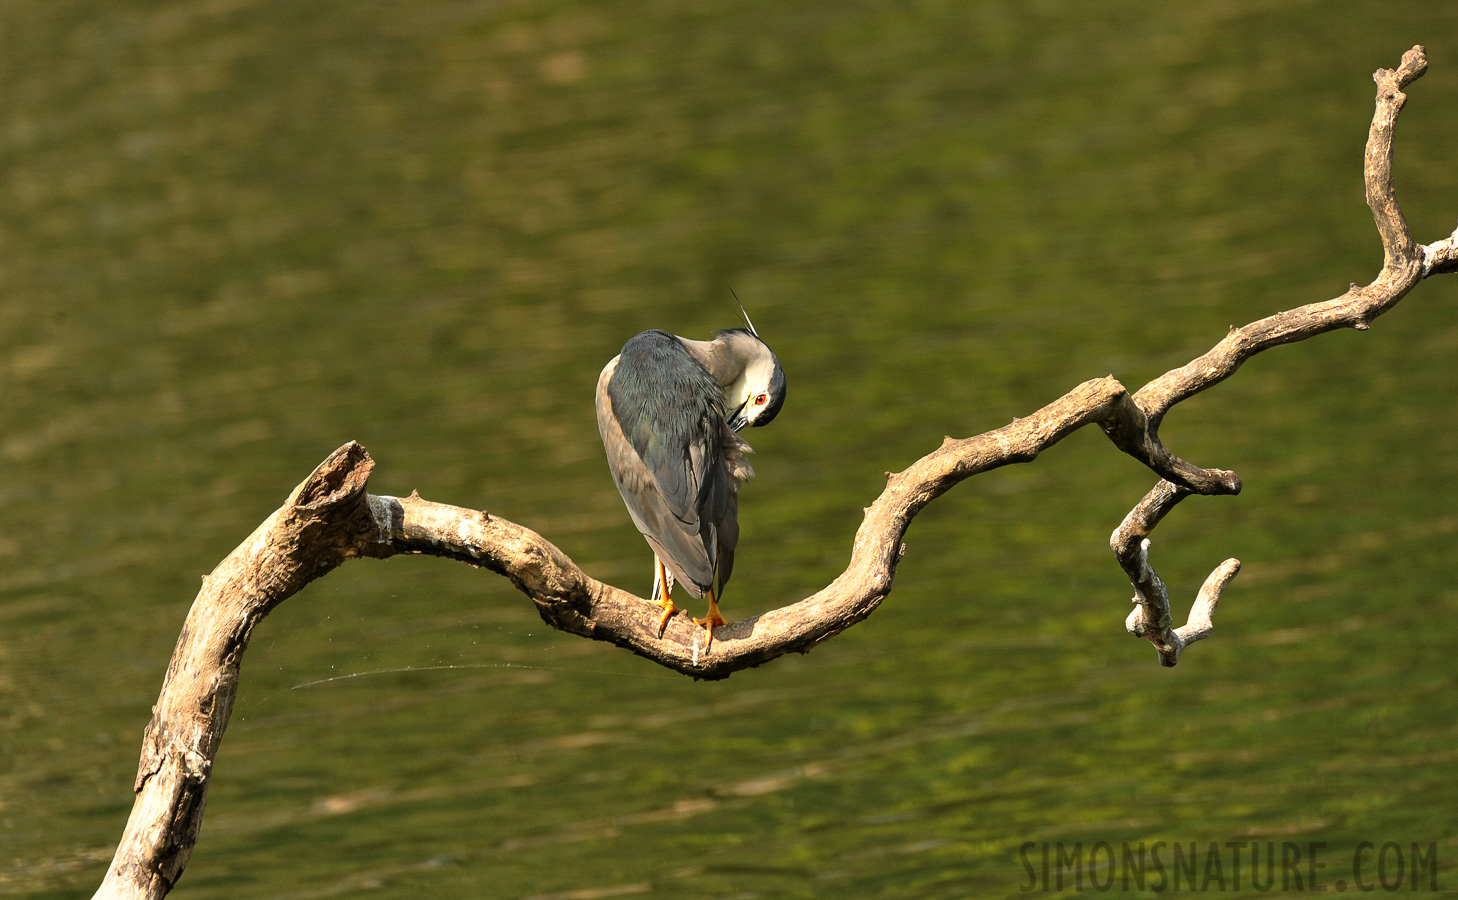 Black-crowned night heron [Nycticorax nycticorax nycticorax]